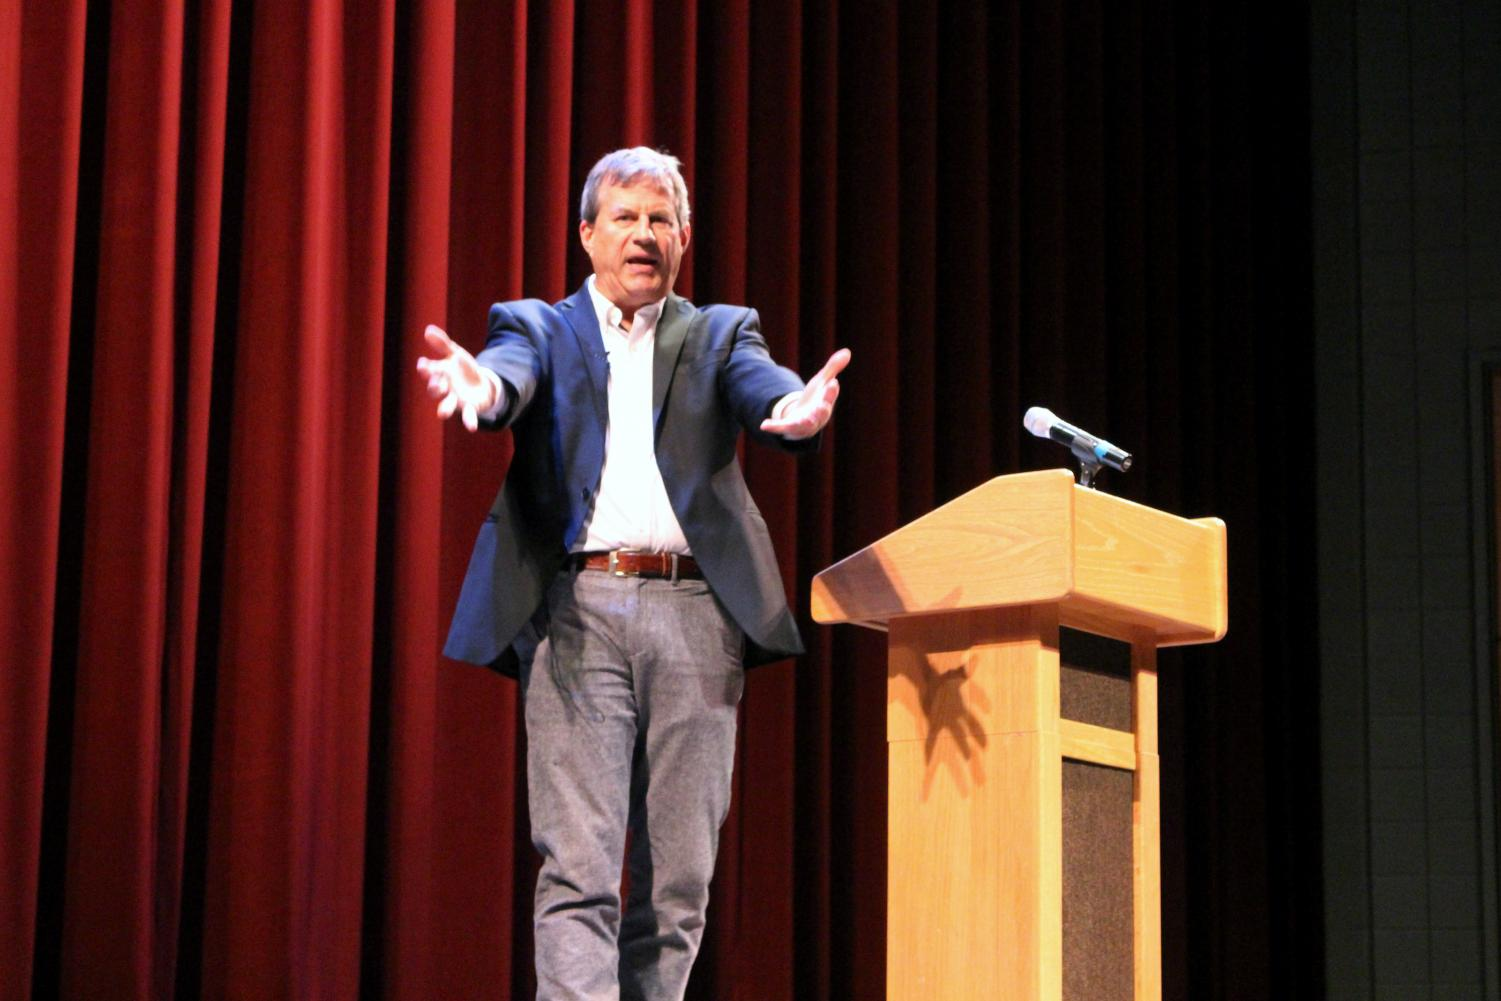 Los Angeles Times reporter Sam Quinones presents data and ideas on the issue of heroin use to a crowd of students on March 12 at the University of Wisconsin-Whitewater.